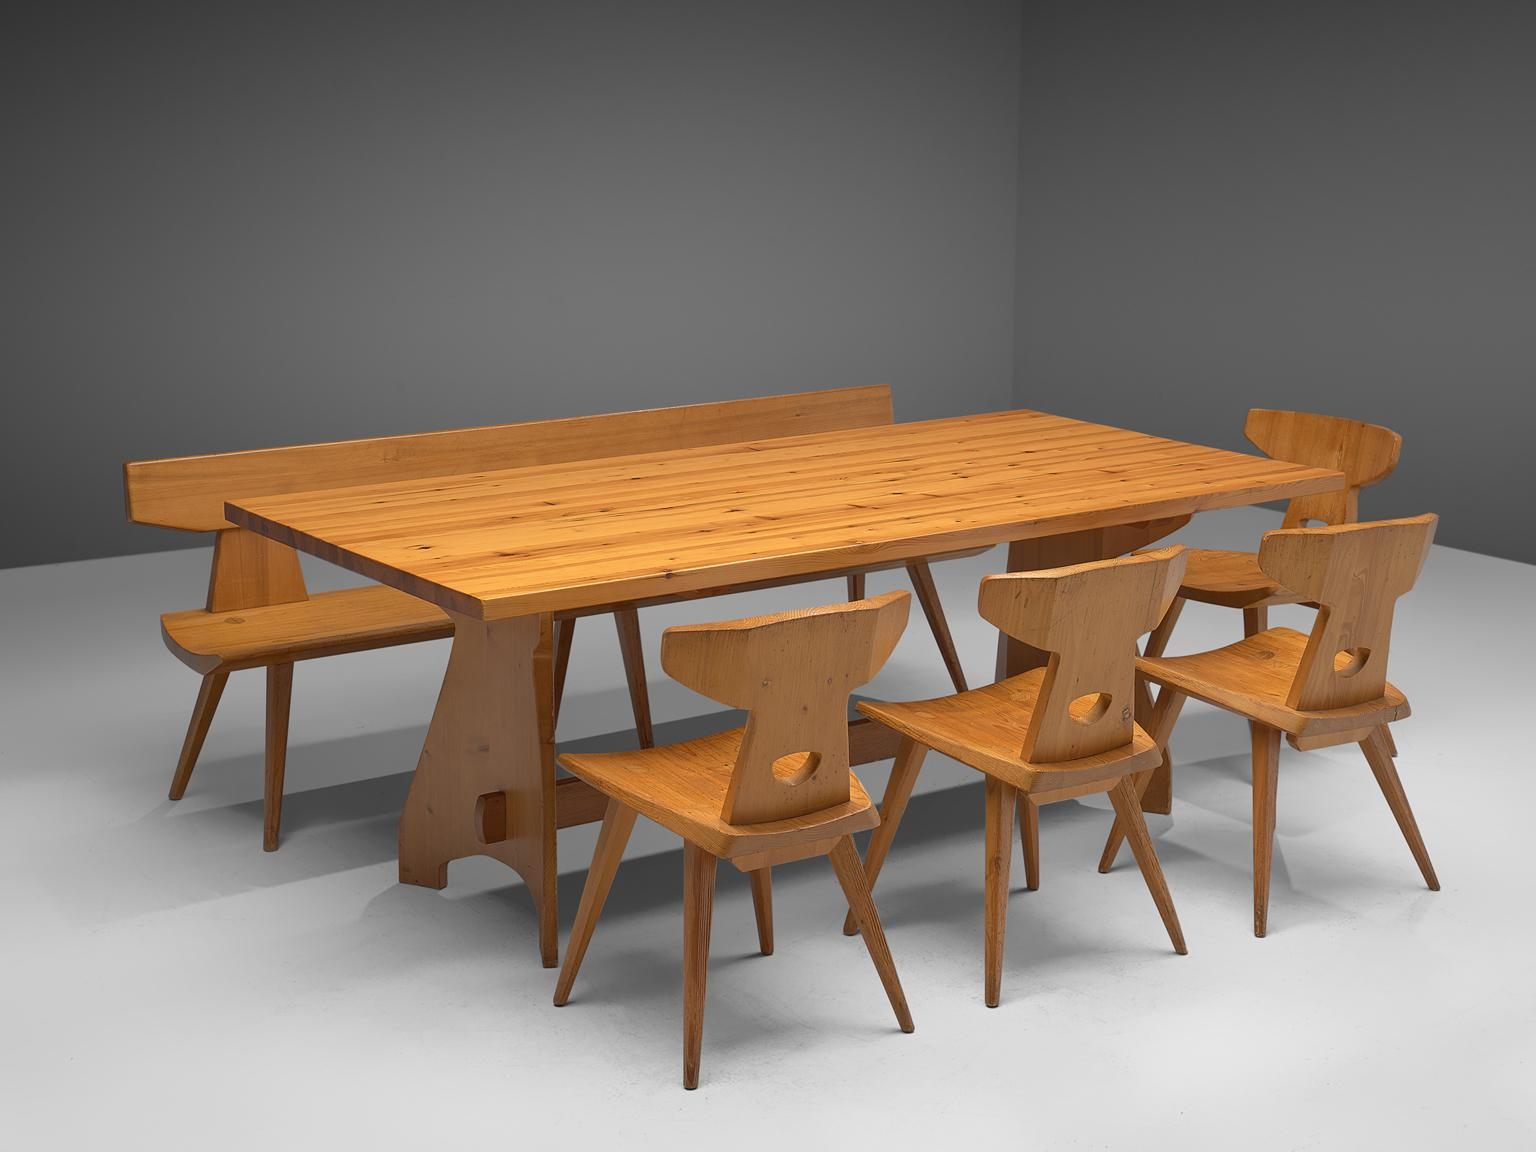 Ordinaire Jacob Kielland Brandt Dining Set In Solid Pine, 1960s